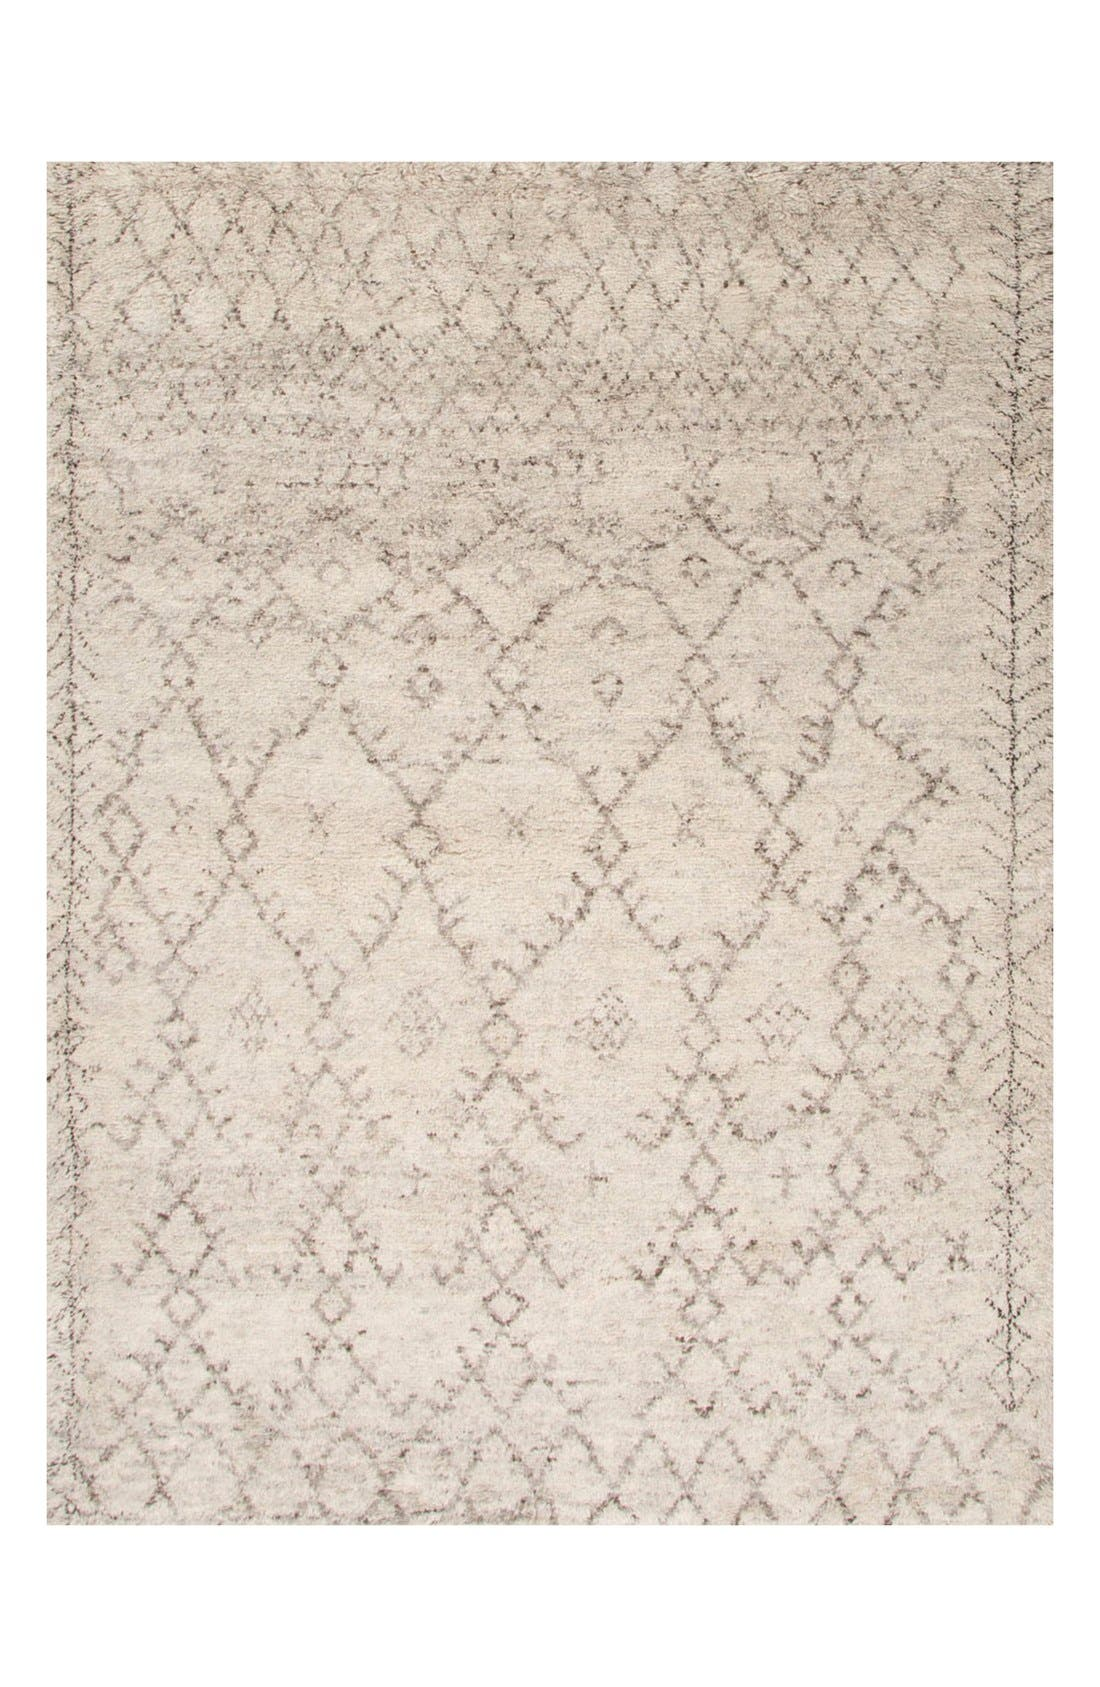 'Zola' Wool Area Rug,                         Main,                         color, Ivory/ Grey